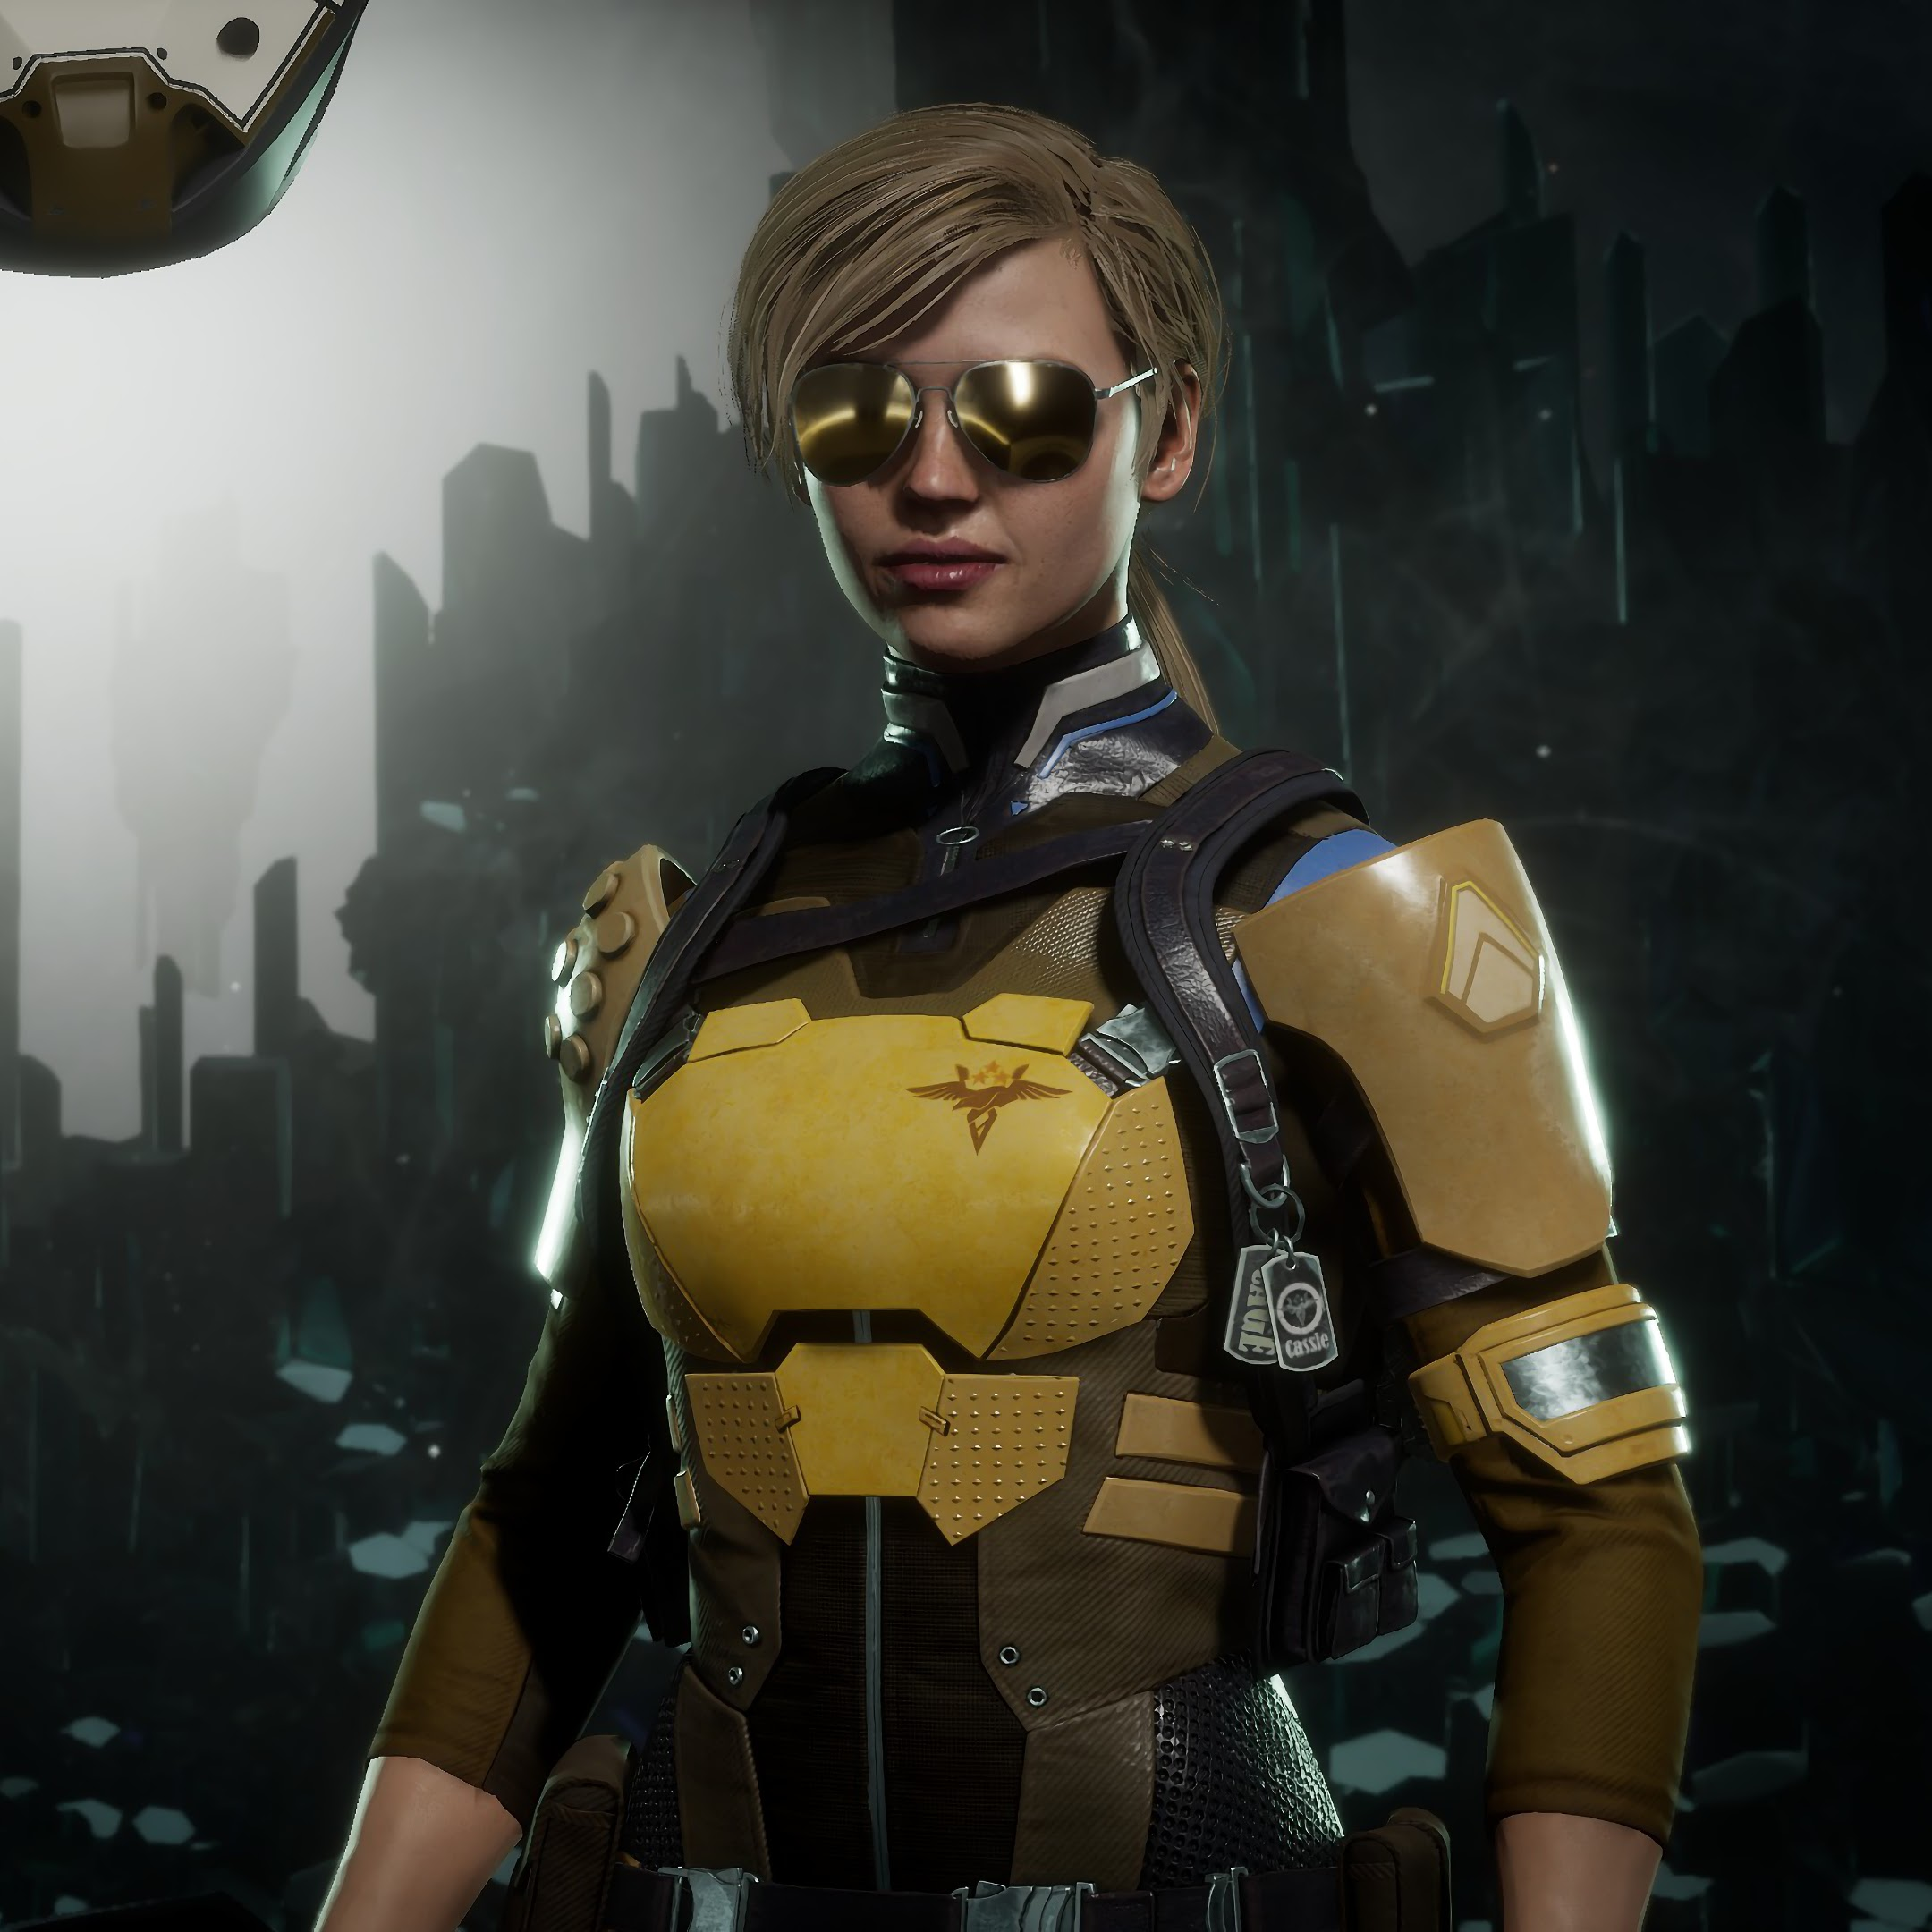 Cassie Cage  Mortal Kombat 11  4k   206 Wallpaper